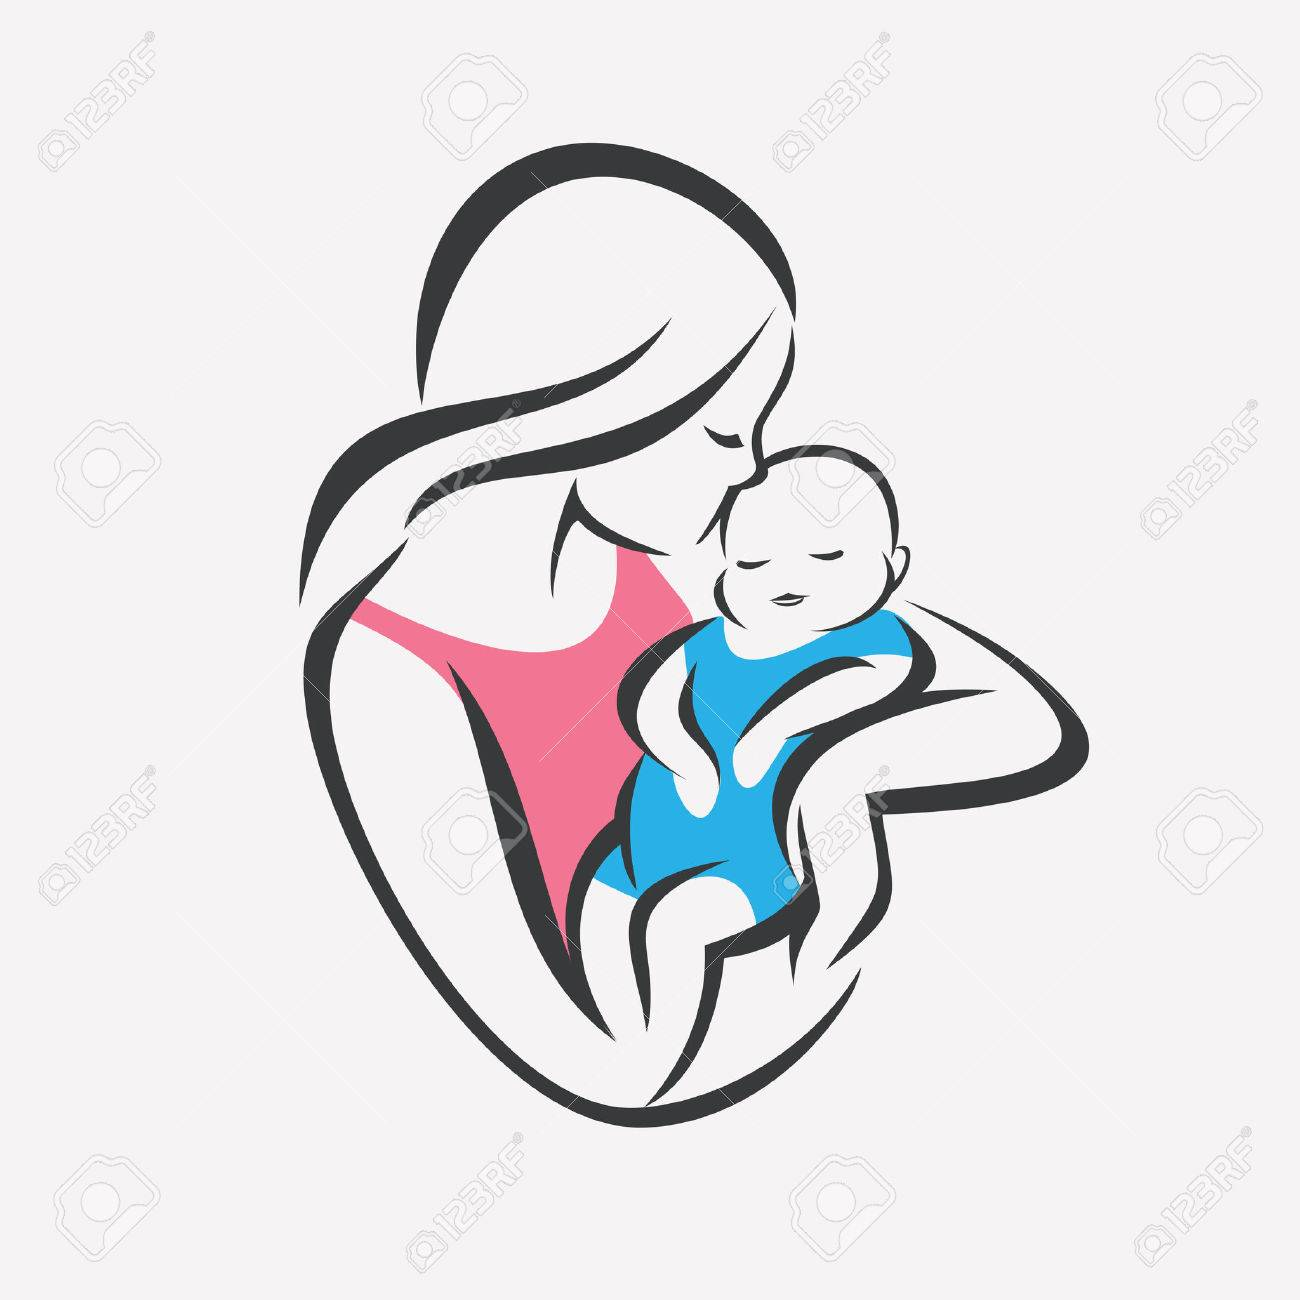 mother and baby stylized vector symbol mom kiss her child logo rh 123rf com mother and child logo png mother and child logo png